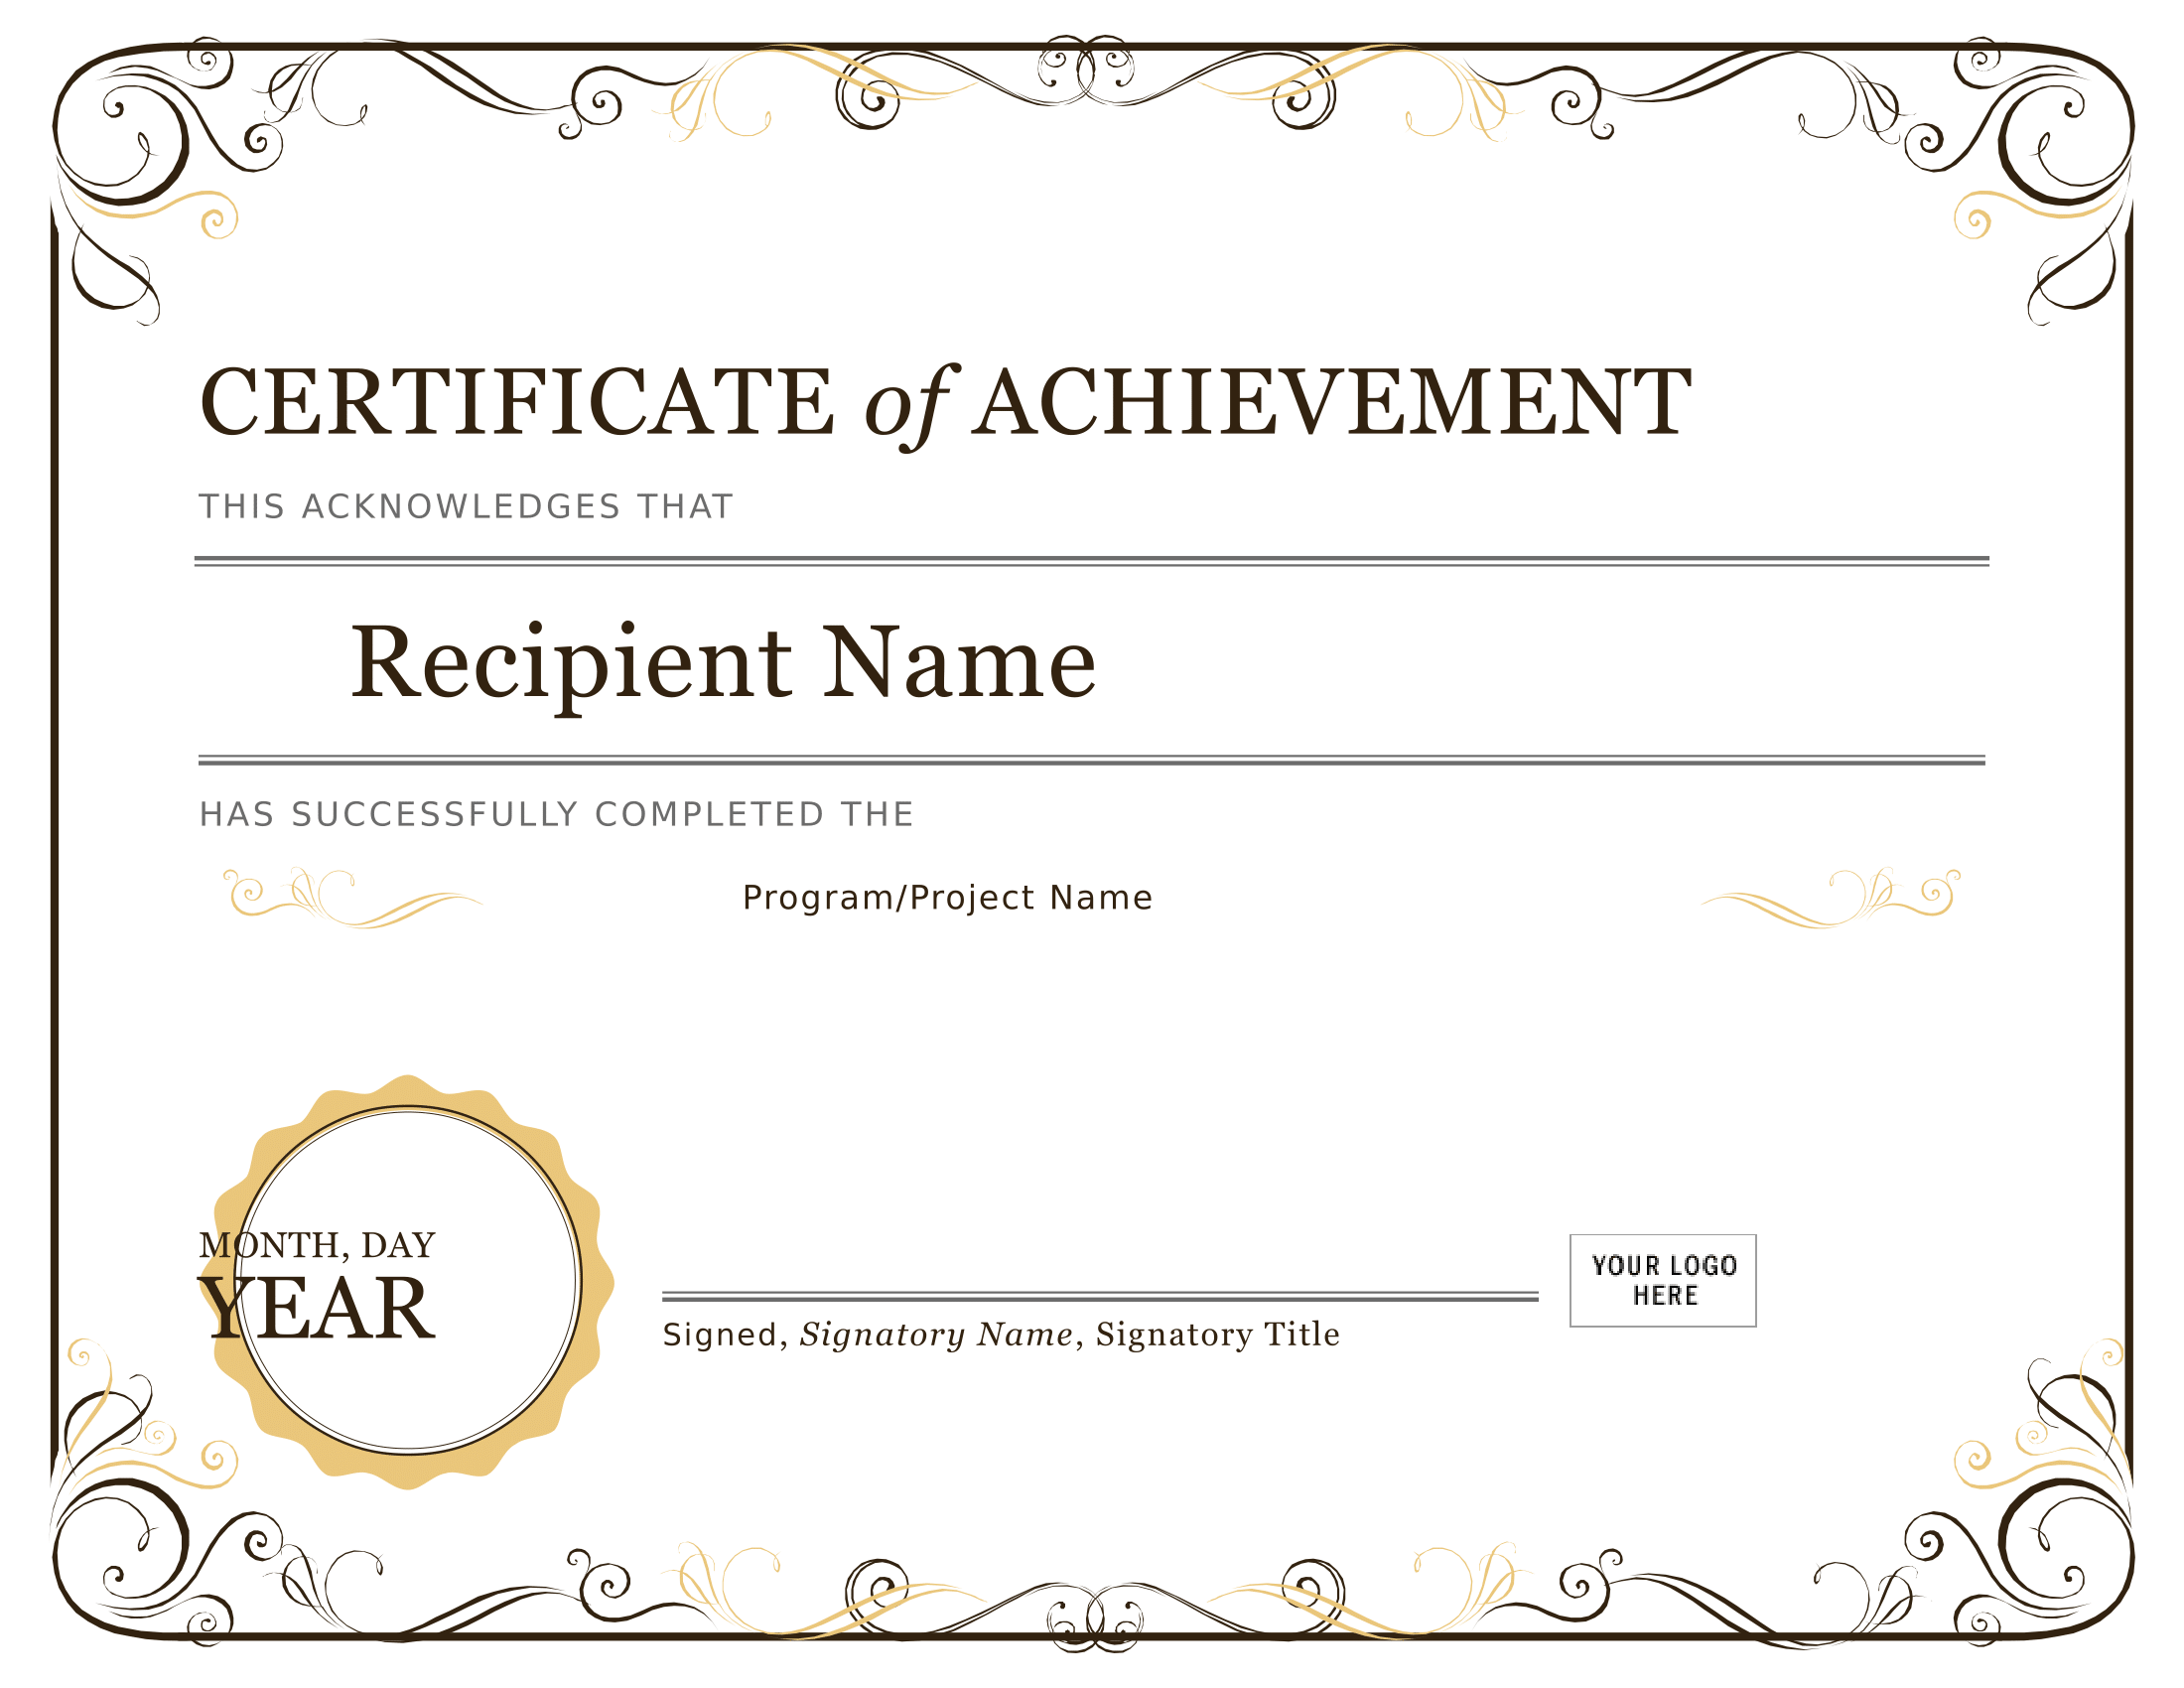 certificate of achievement template free - certificates download free business letter templates